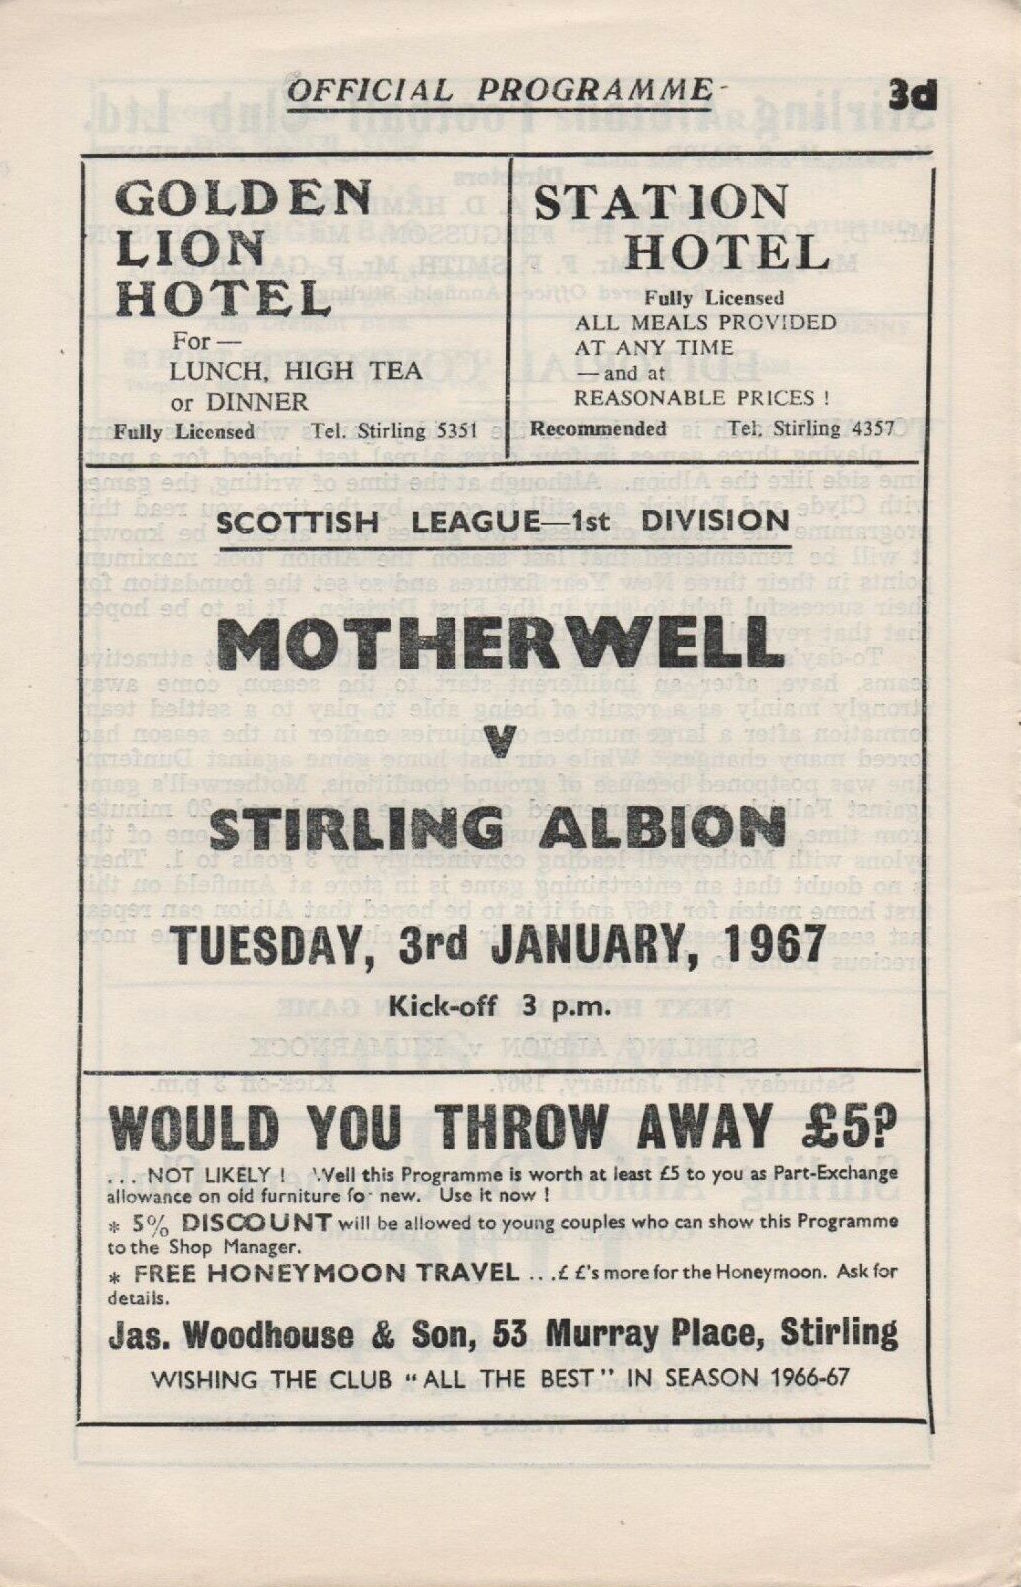 versus Stirling Albion Programme Cover